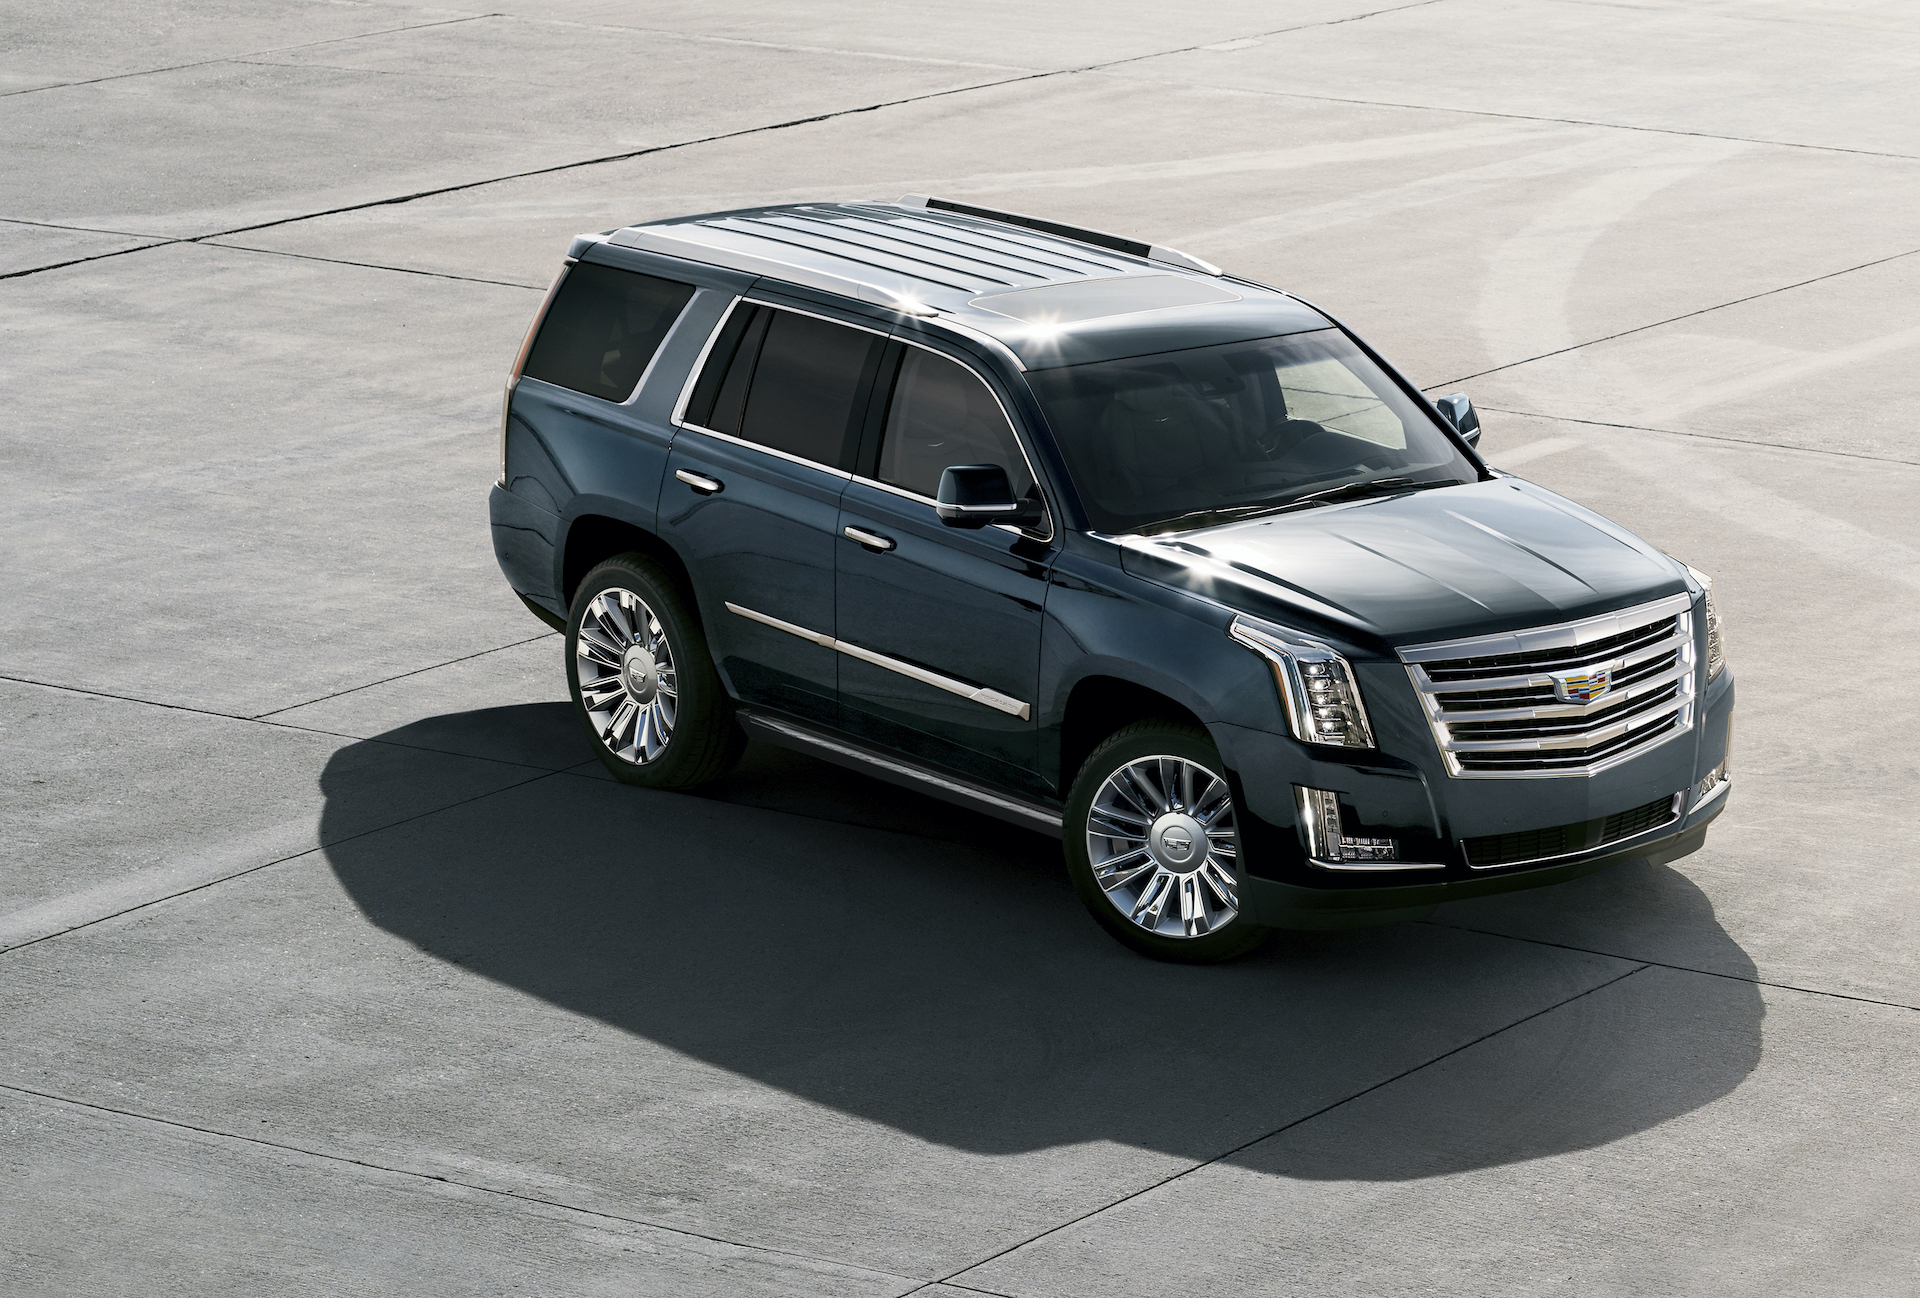 35 All New 2020 Cadillac Escalade News Images with 2020 Cadillac Escalade News